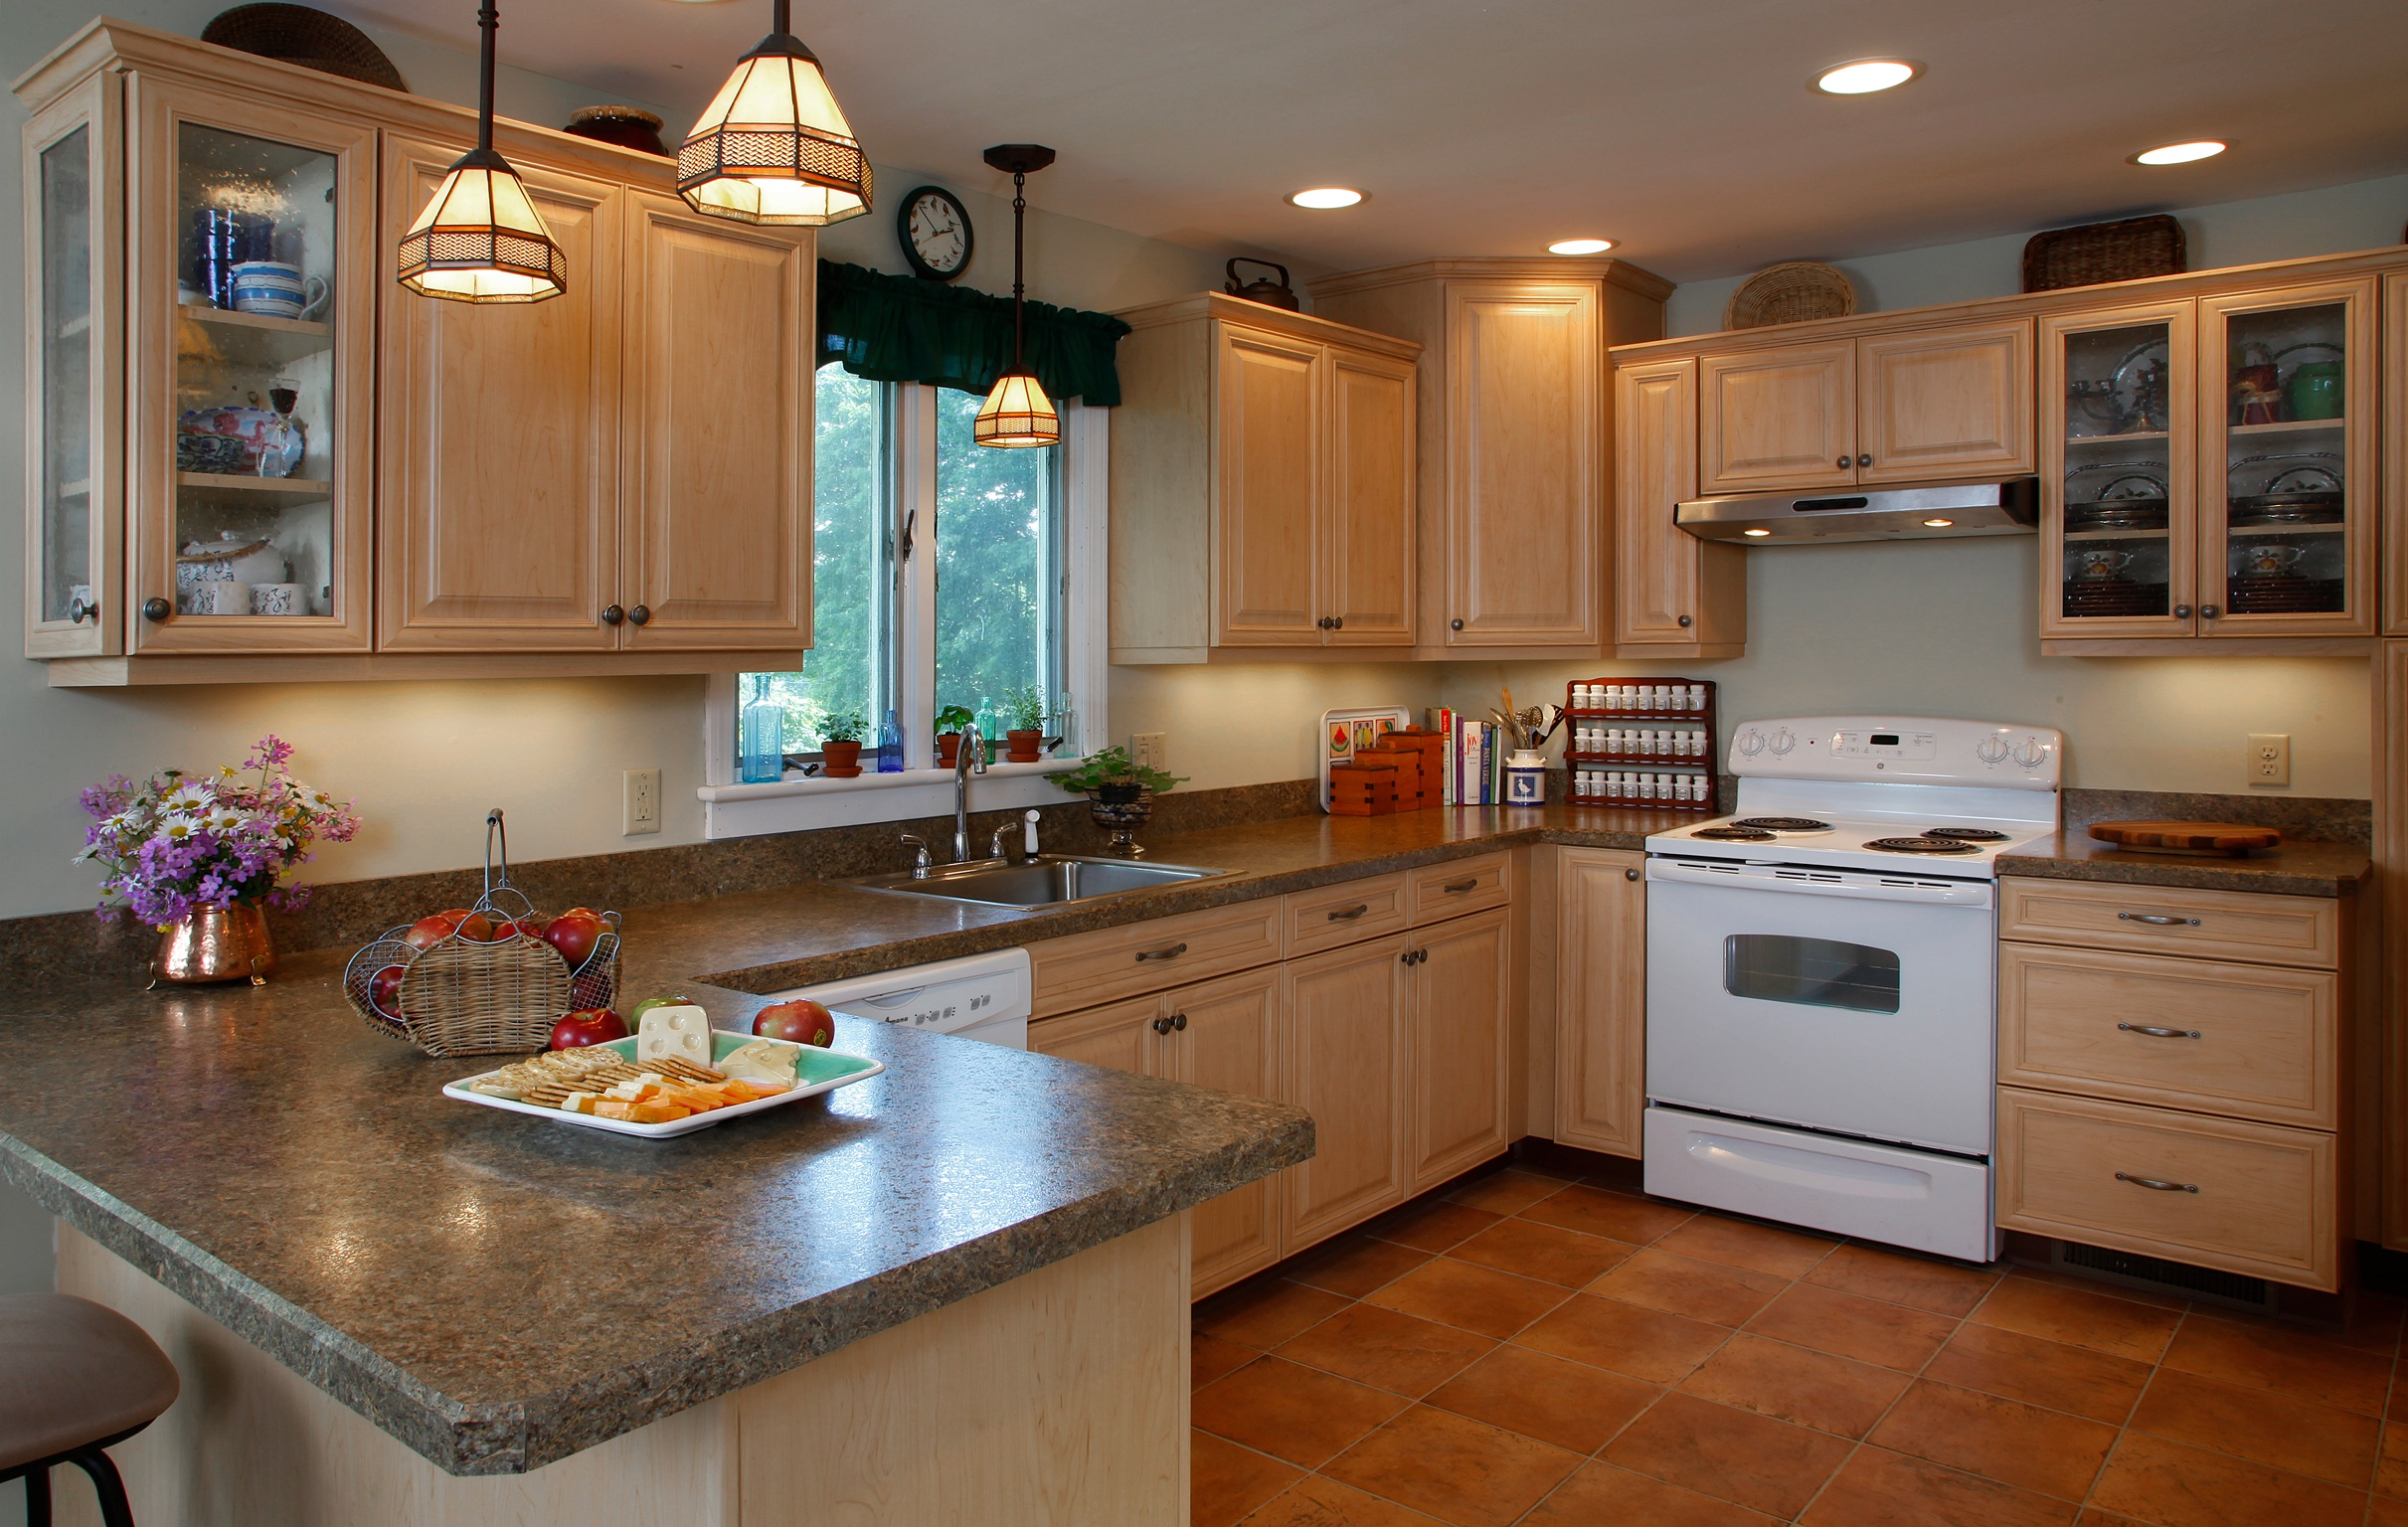 Non Granite Kitchen Countertops The Pros And Cons Of The 4 Inch Backsplash